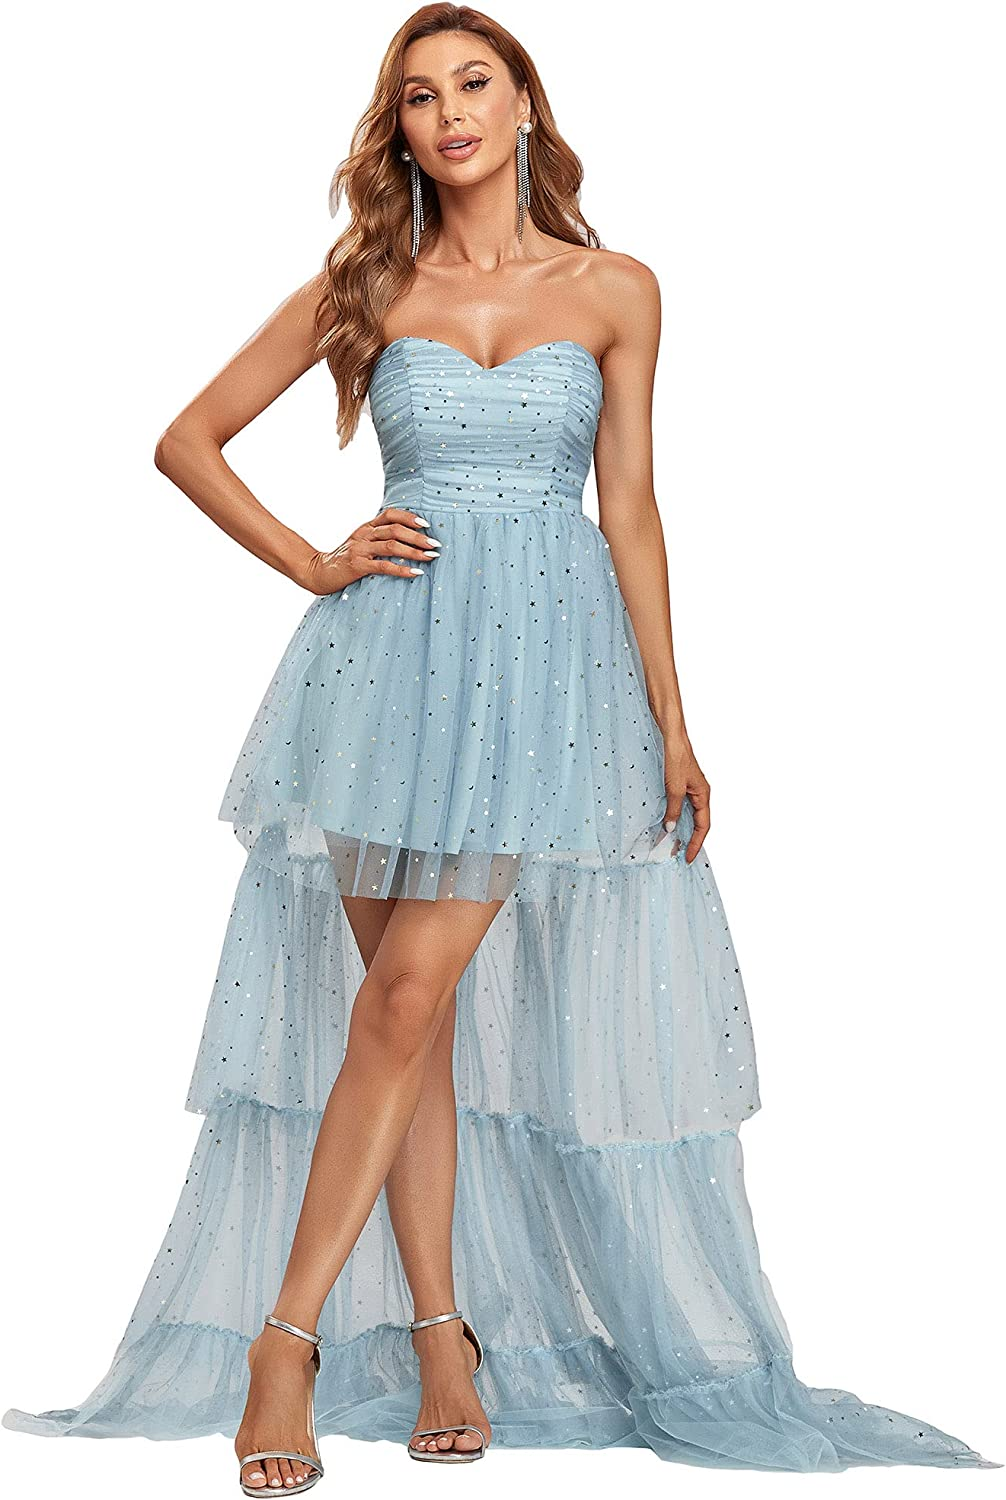 Ever-Pretty Women's Gold Stamping Tulle Ruched Sleeveless Homecoming Dress Formal Party Dress 30245